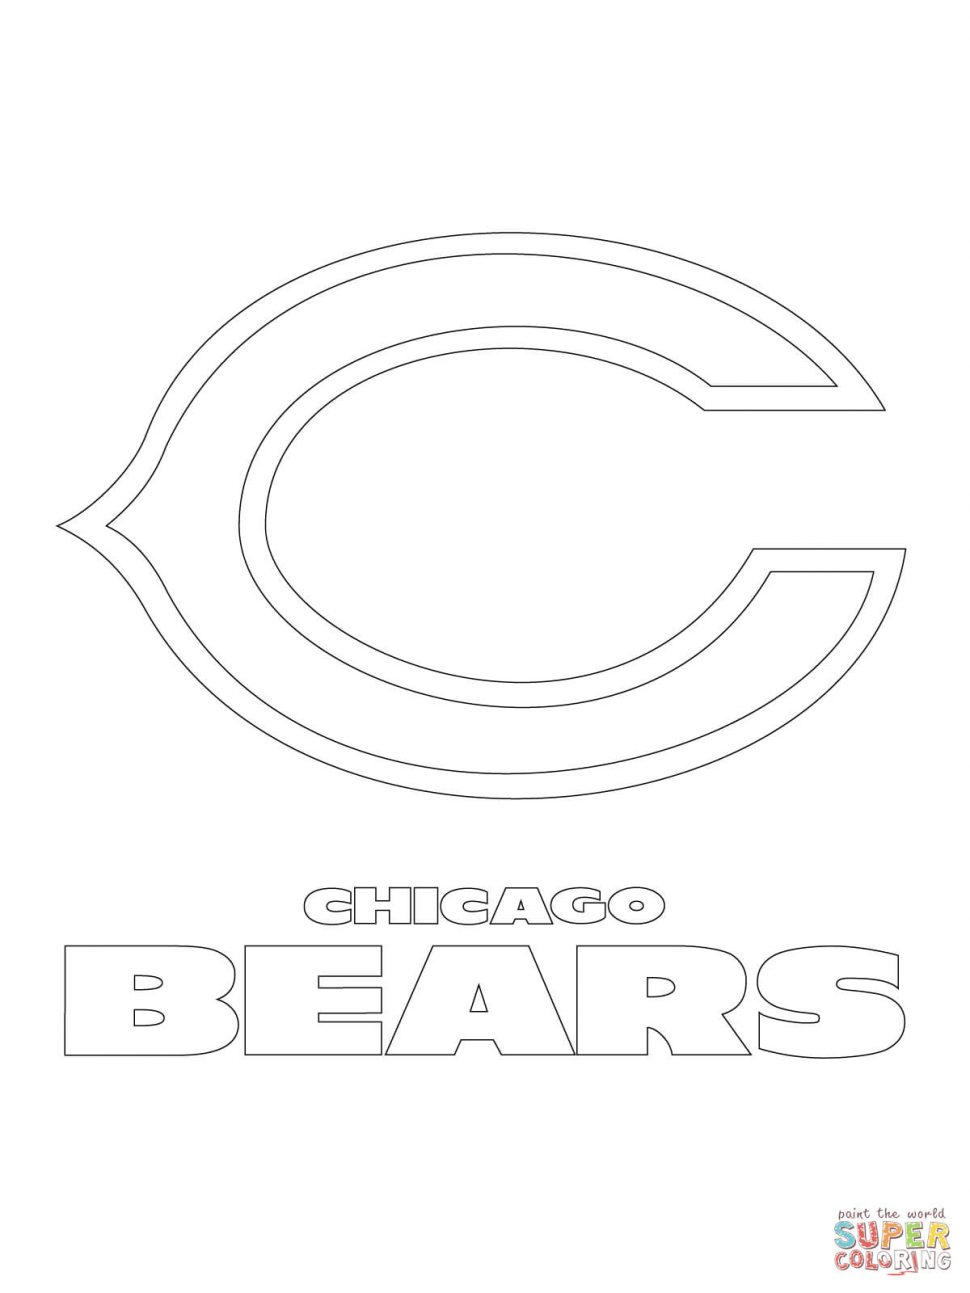 Chicago Bears Helmet Drawing at GetDrawings.com | Free for personal ...